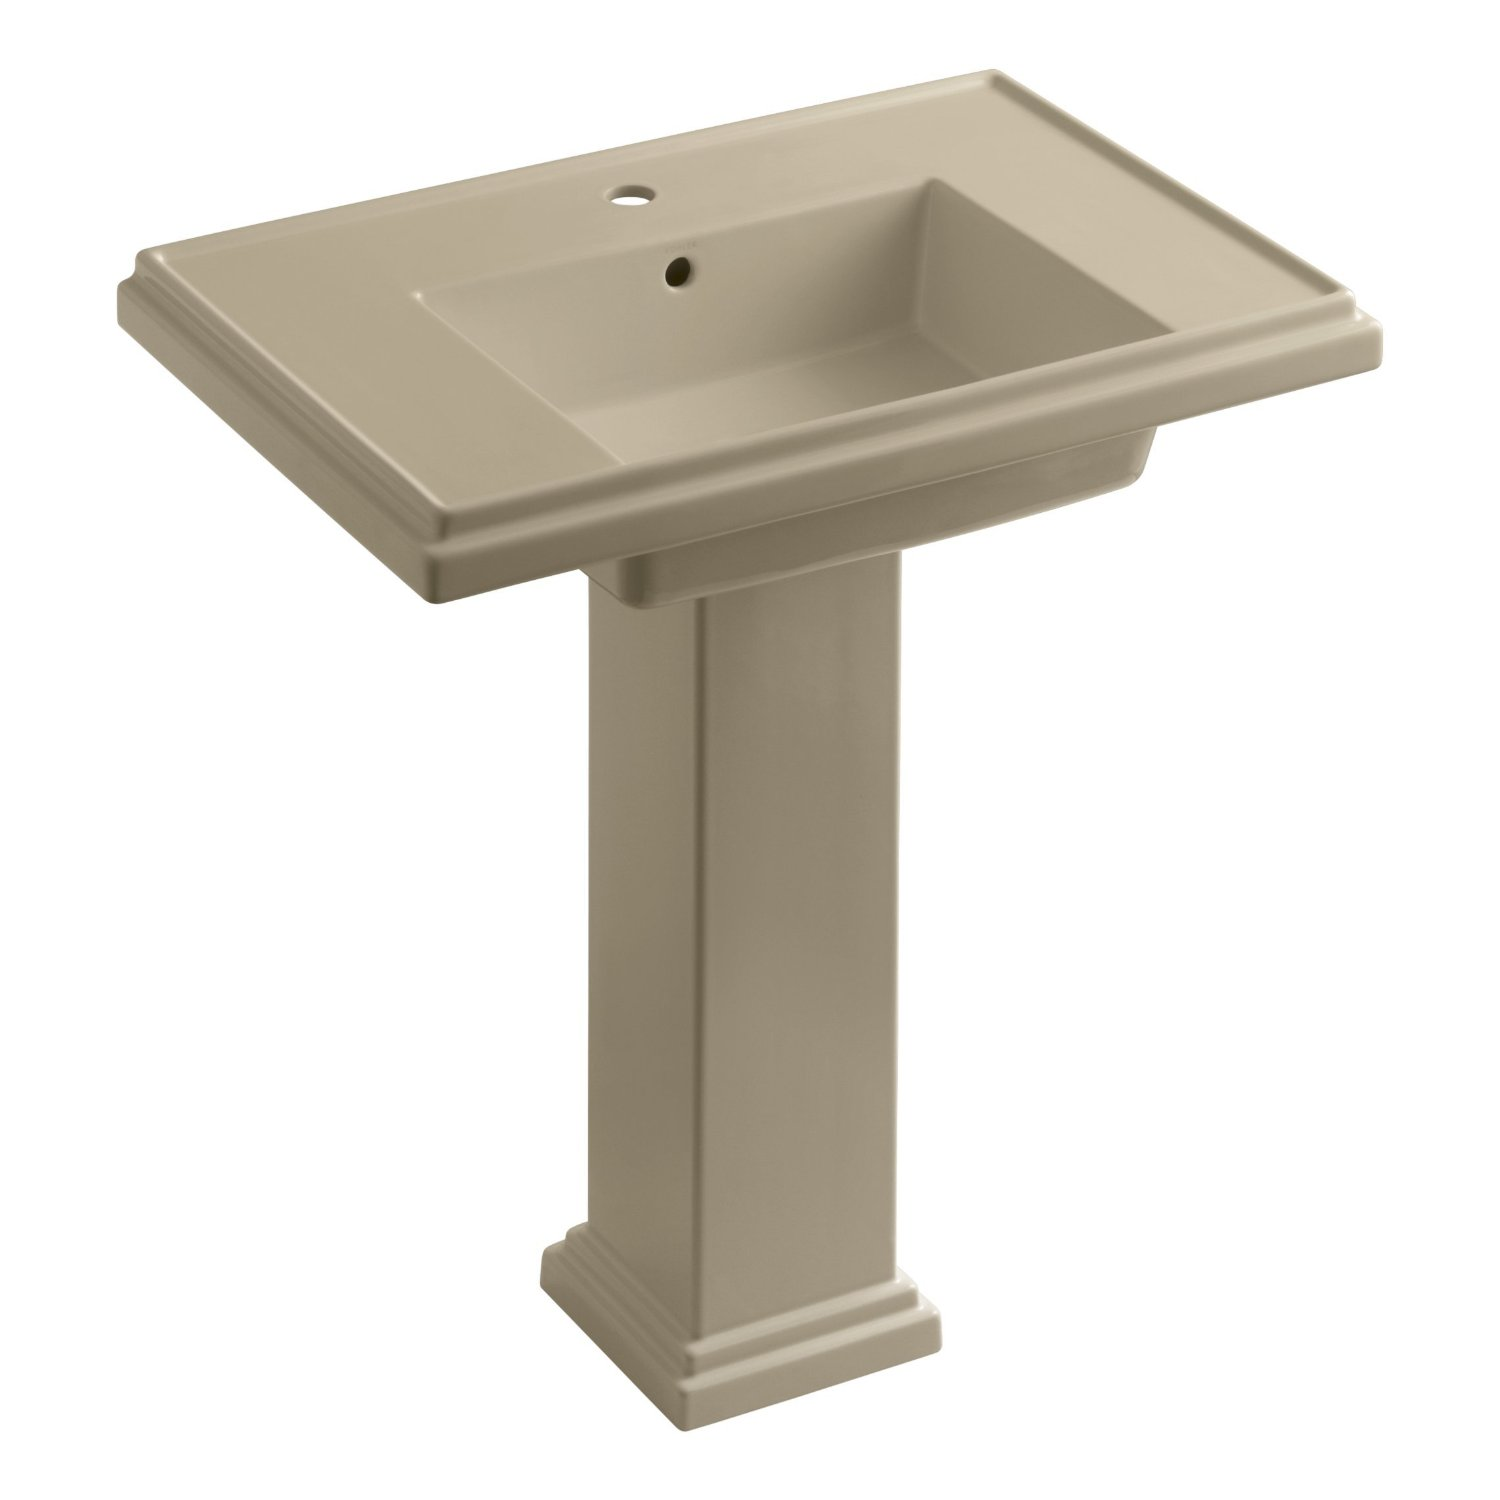 Amazon.com: KOHLER K-2845-1-0 Tresham 30-inch Pedestal Bathroom Sink ...